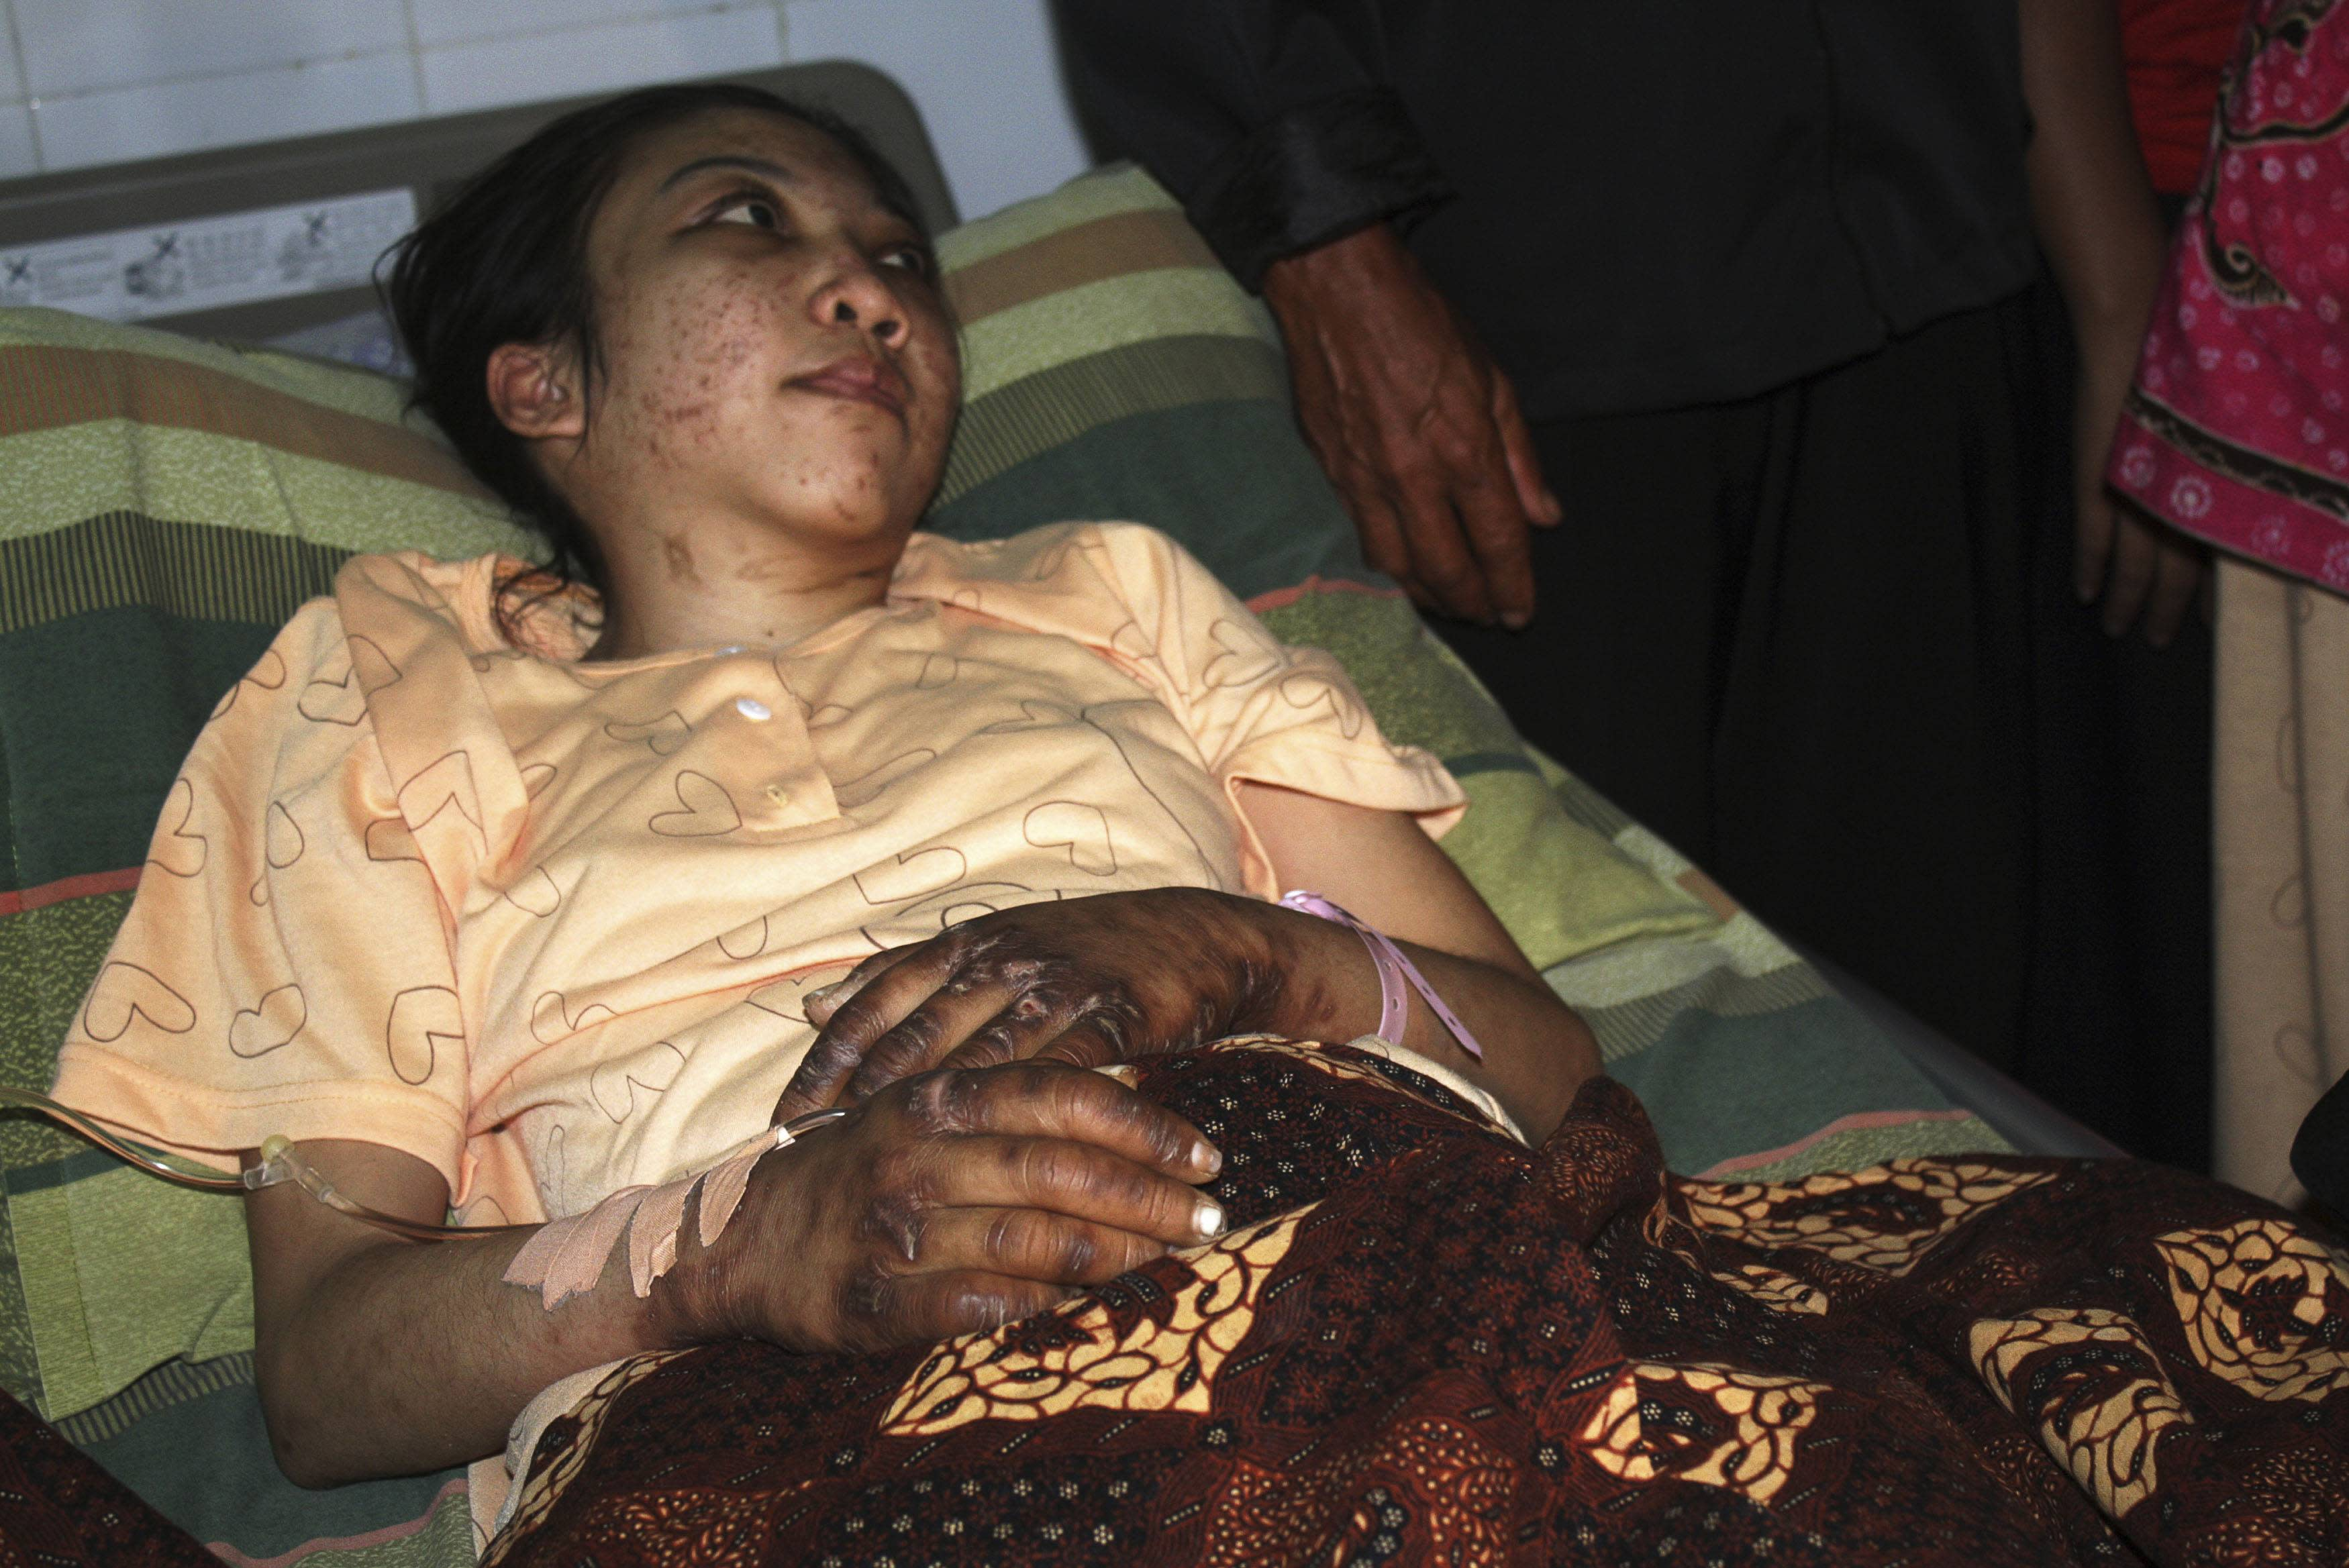 Indonesian domestic helper Erwiana Sulistyaningsih lies in a bed whilst being treated at a hospital in Sragen, Indonesia's Central Java province January 17, 2014. Thousands of people rallied in Hong Kong on Sunday to demand justice for Erwiana, who was badly beaten by her employer in a case that has sparked widespread outrage and a police investigation into accusations of torture. Erwiana had suffered extensive injuries but her condition was stabilising, a hospital spokesman said. Picture taken January 17, 2014. REUTERS/Stringer (INDONESIA - Tags: HEALTH)